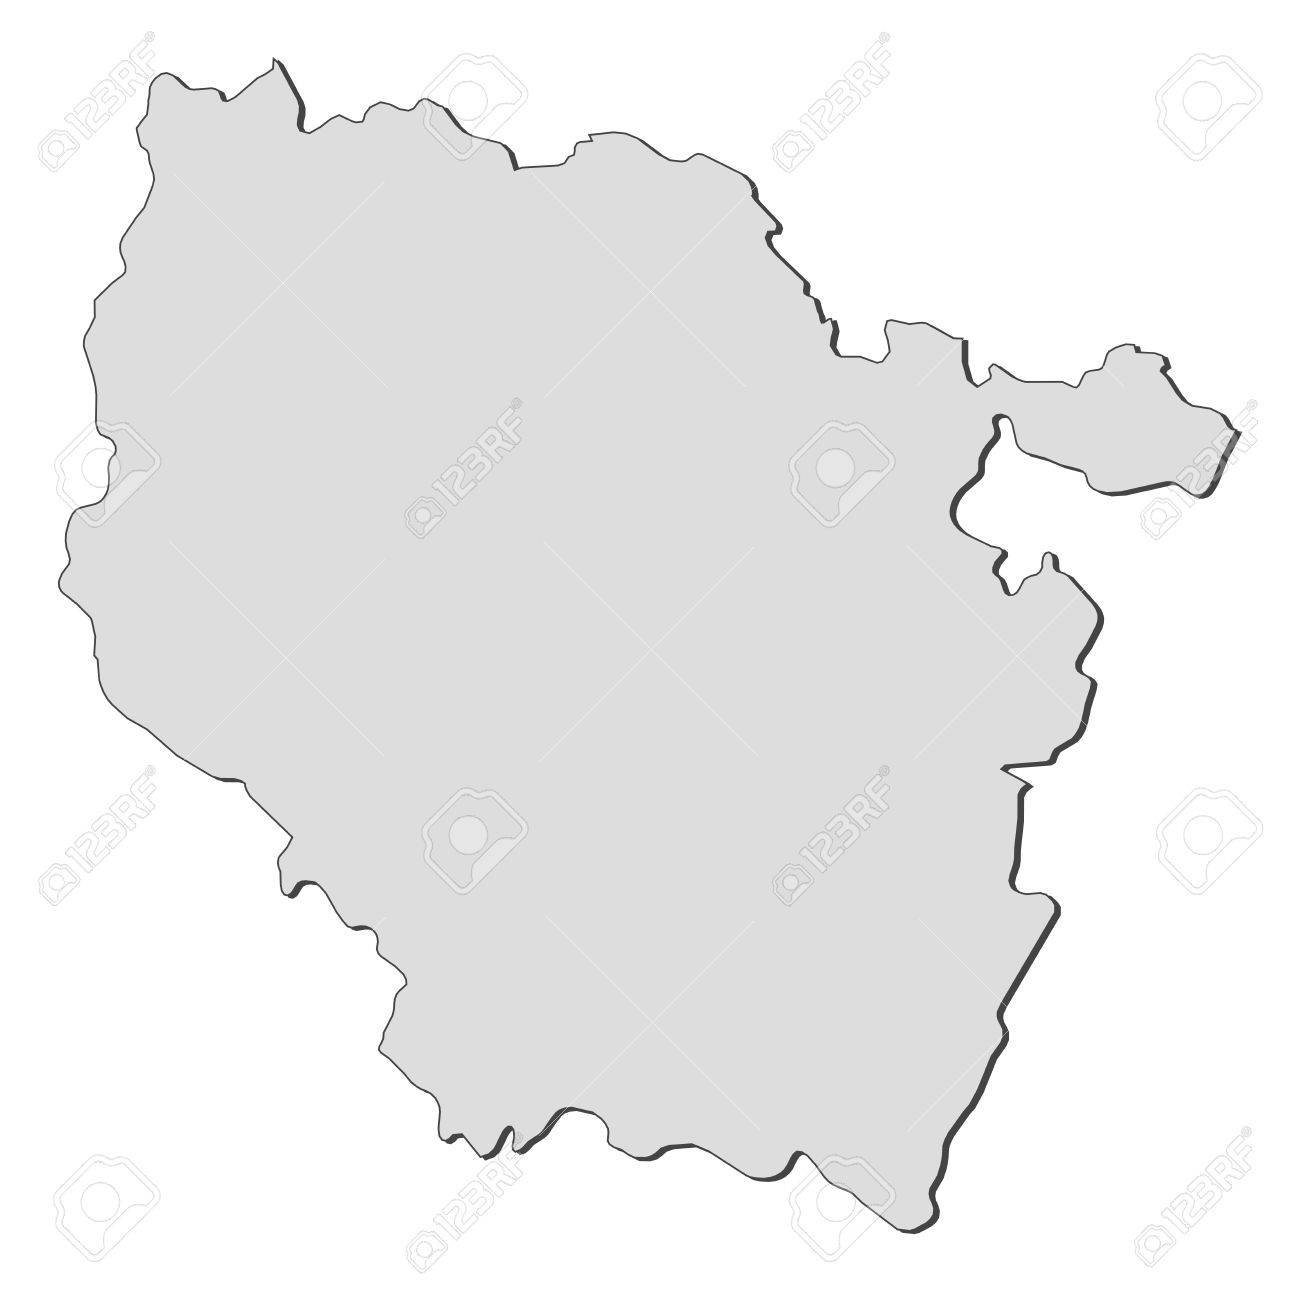 Map Of Lorraine A Region Of France Royalty Free Cliparts Vectors